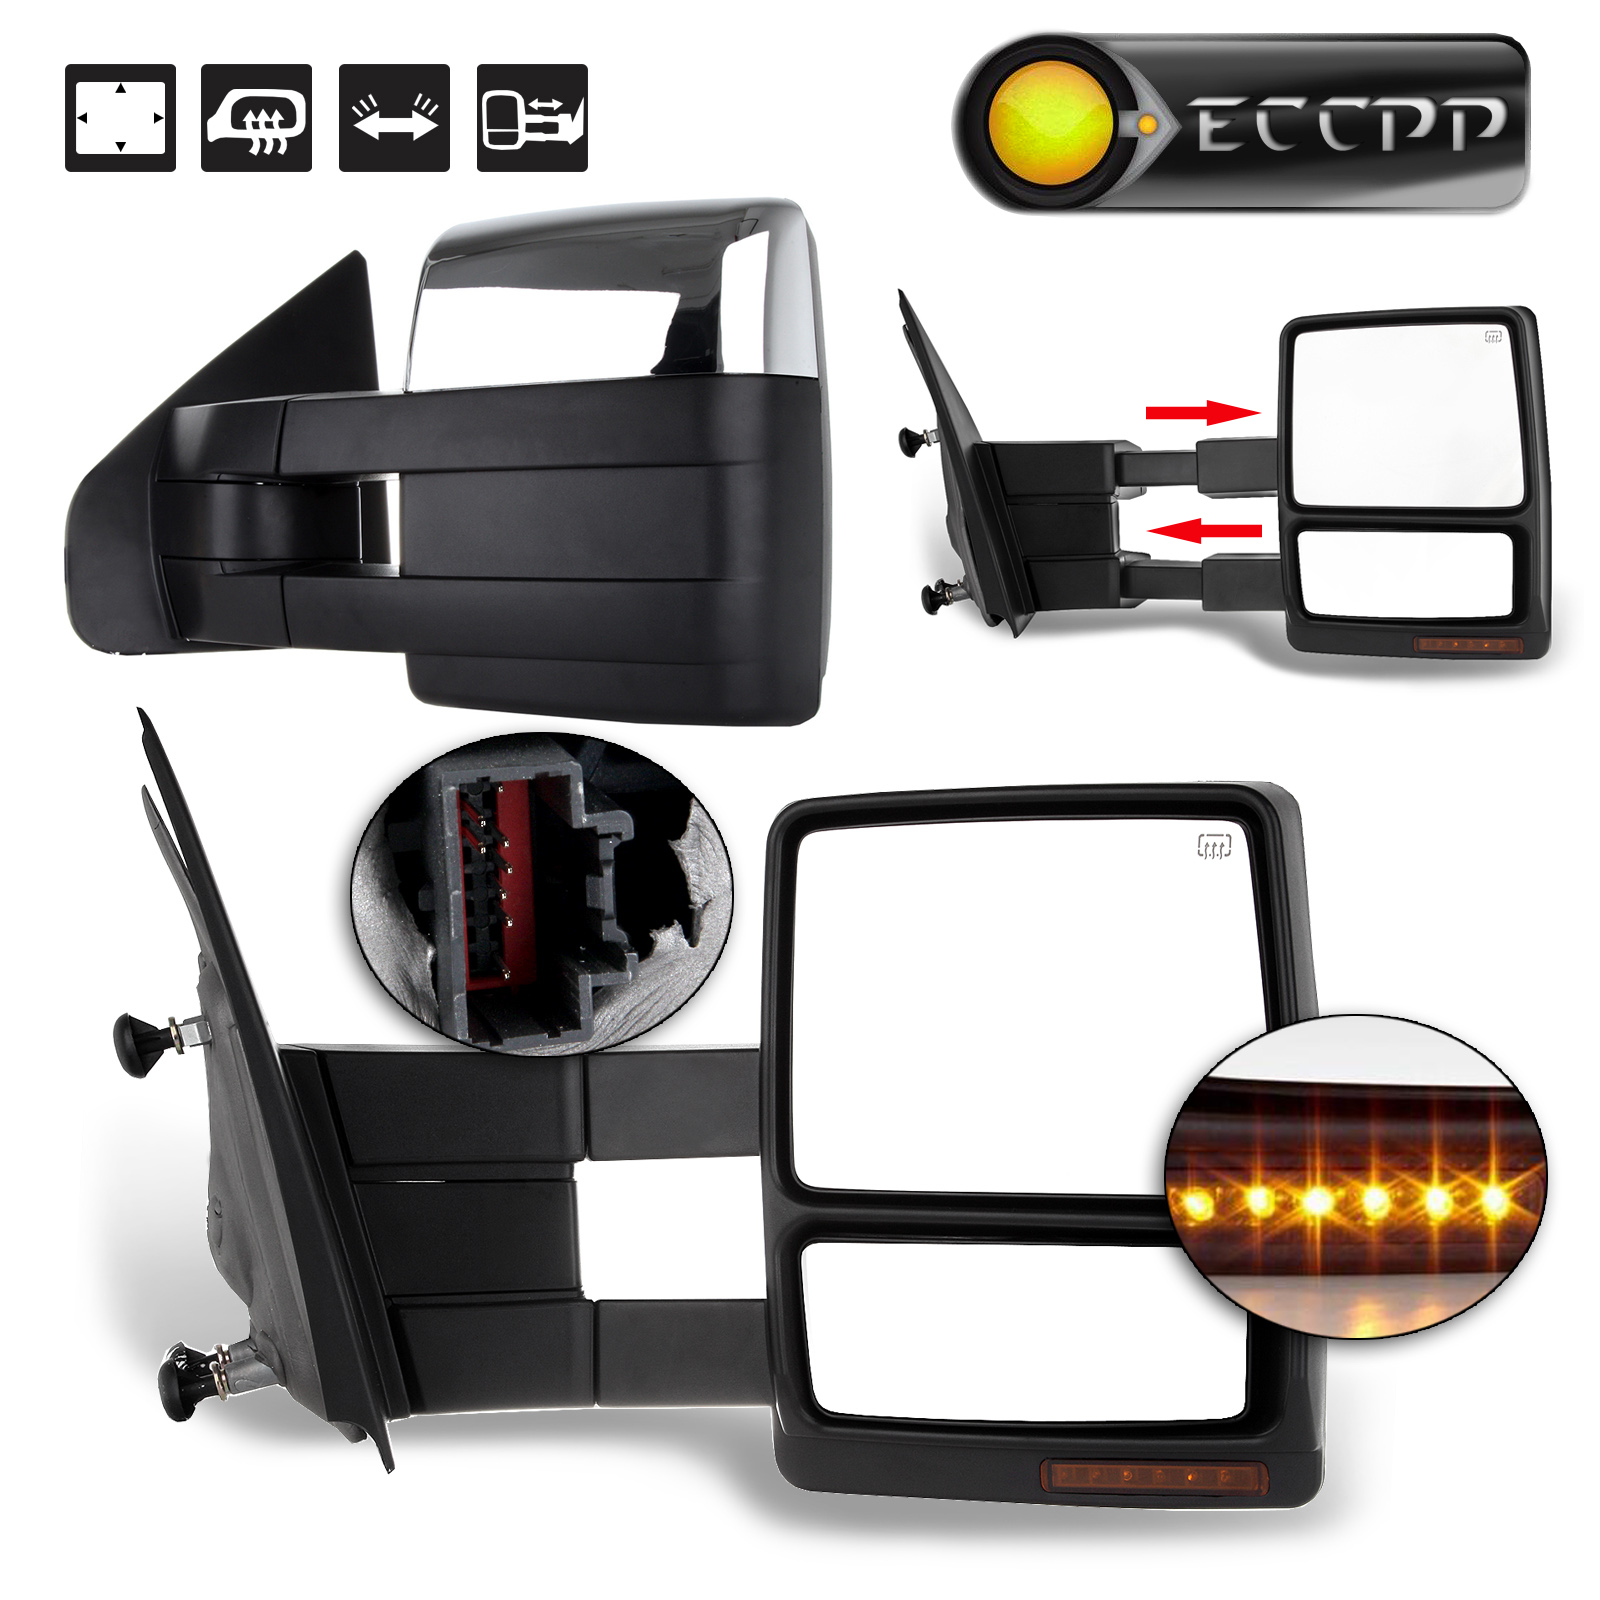 Eccpp power heated mirror ford 2004 2005 2006 2007 2008 2009 2010 2014 ford f 150 led signal side view chrome towing mirrors